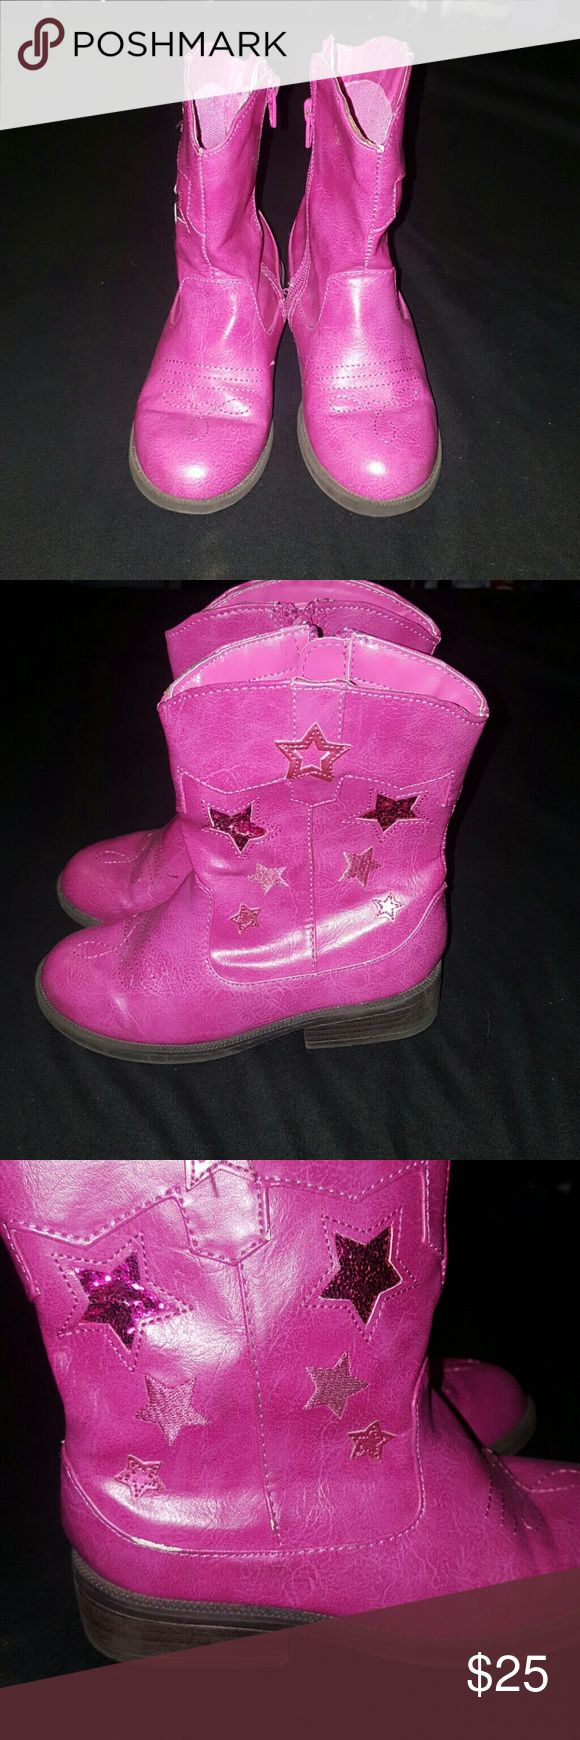 Girls pink cowgirl boots Super cute pink cowgirl boots! Good condition, minimal wear and tear. Cherokee Shoes Boots